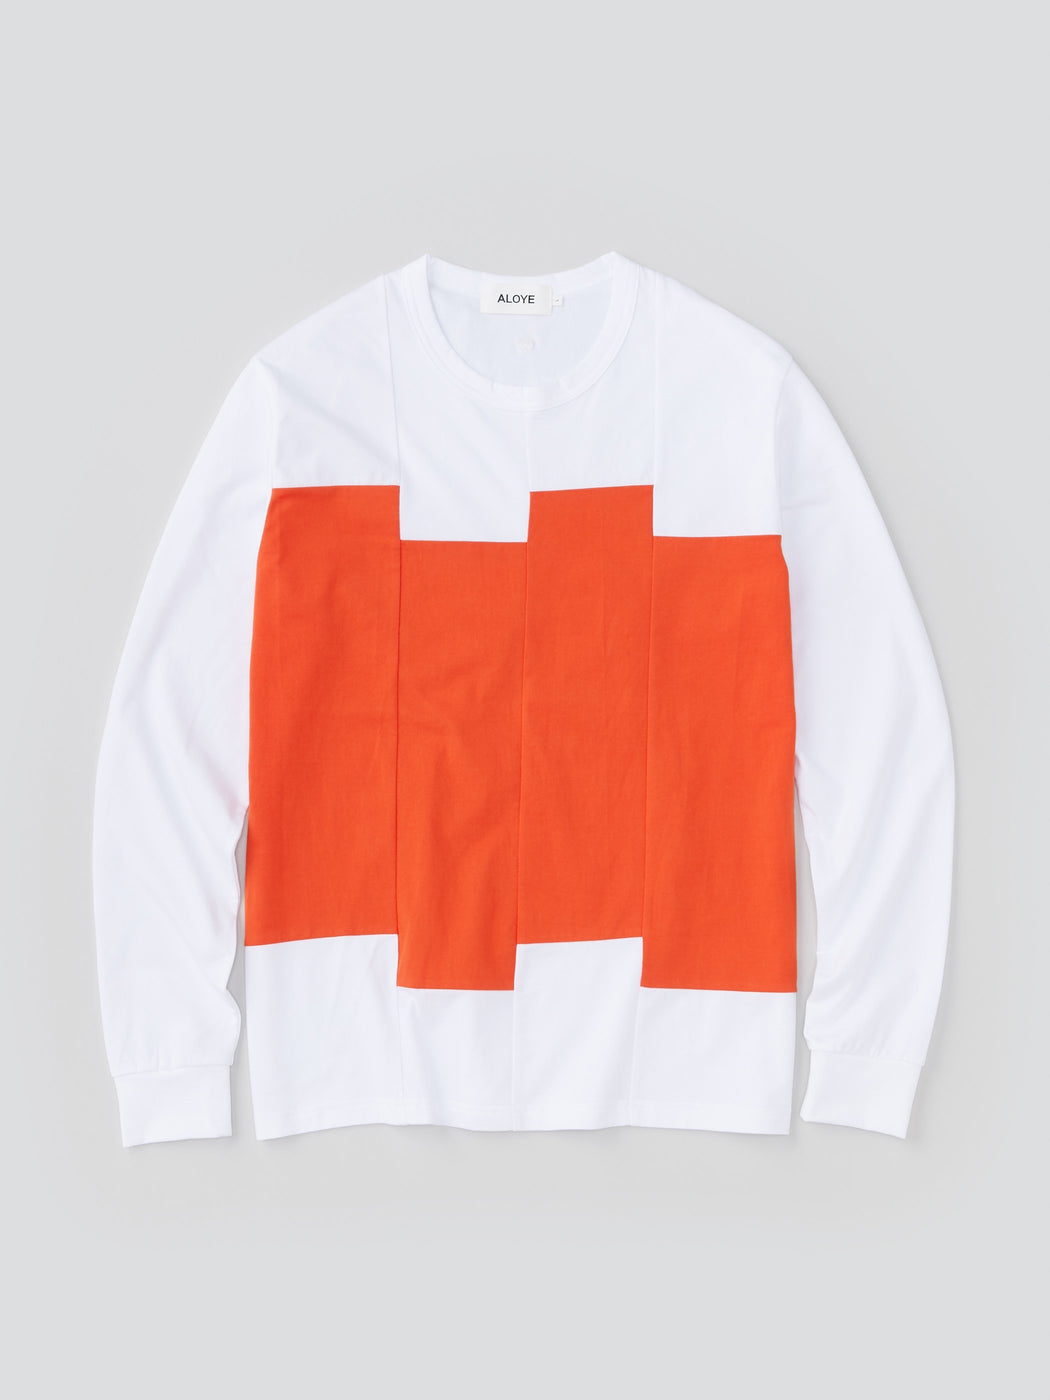 ALOYE Color Blocks Men's Long Sleeve T-shirt White-Orange Rectangles